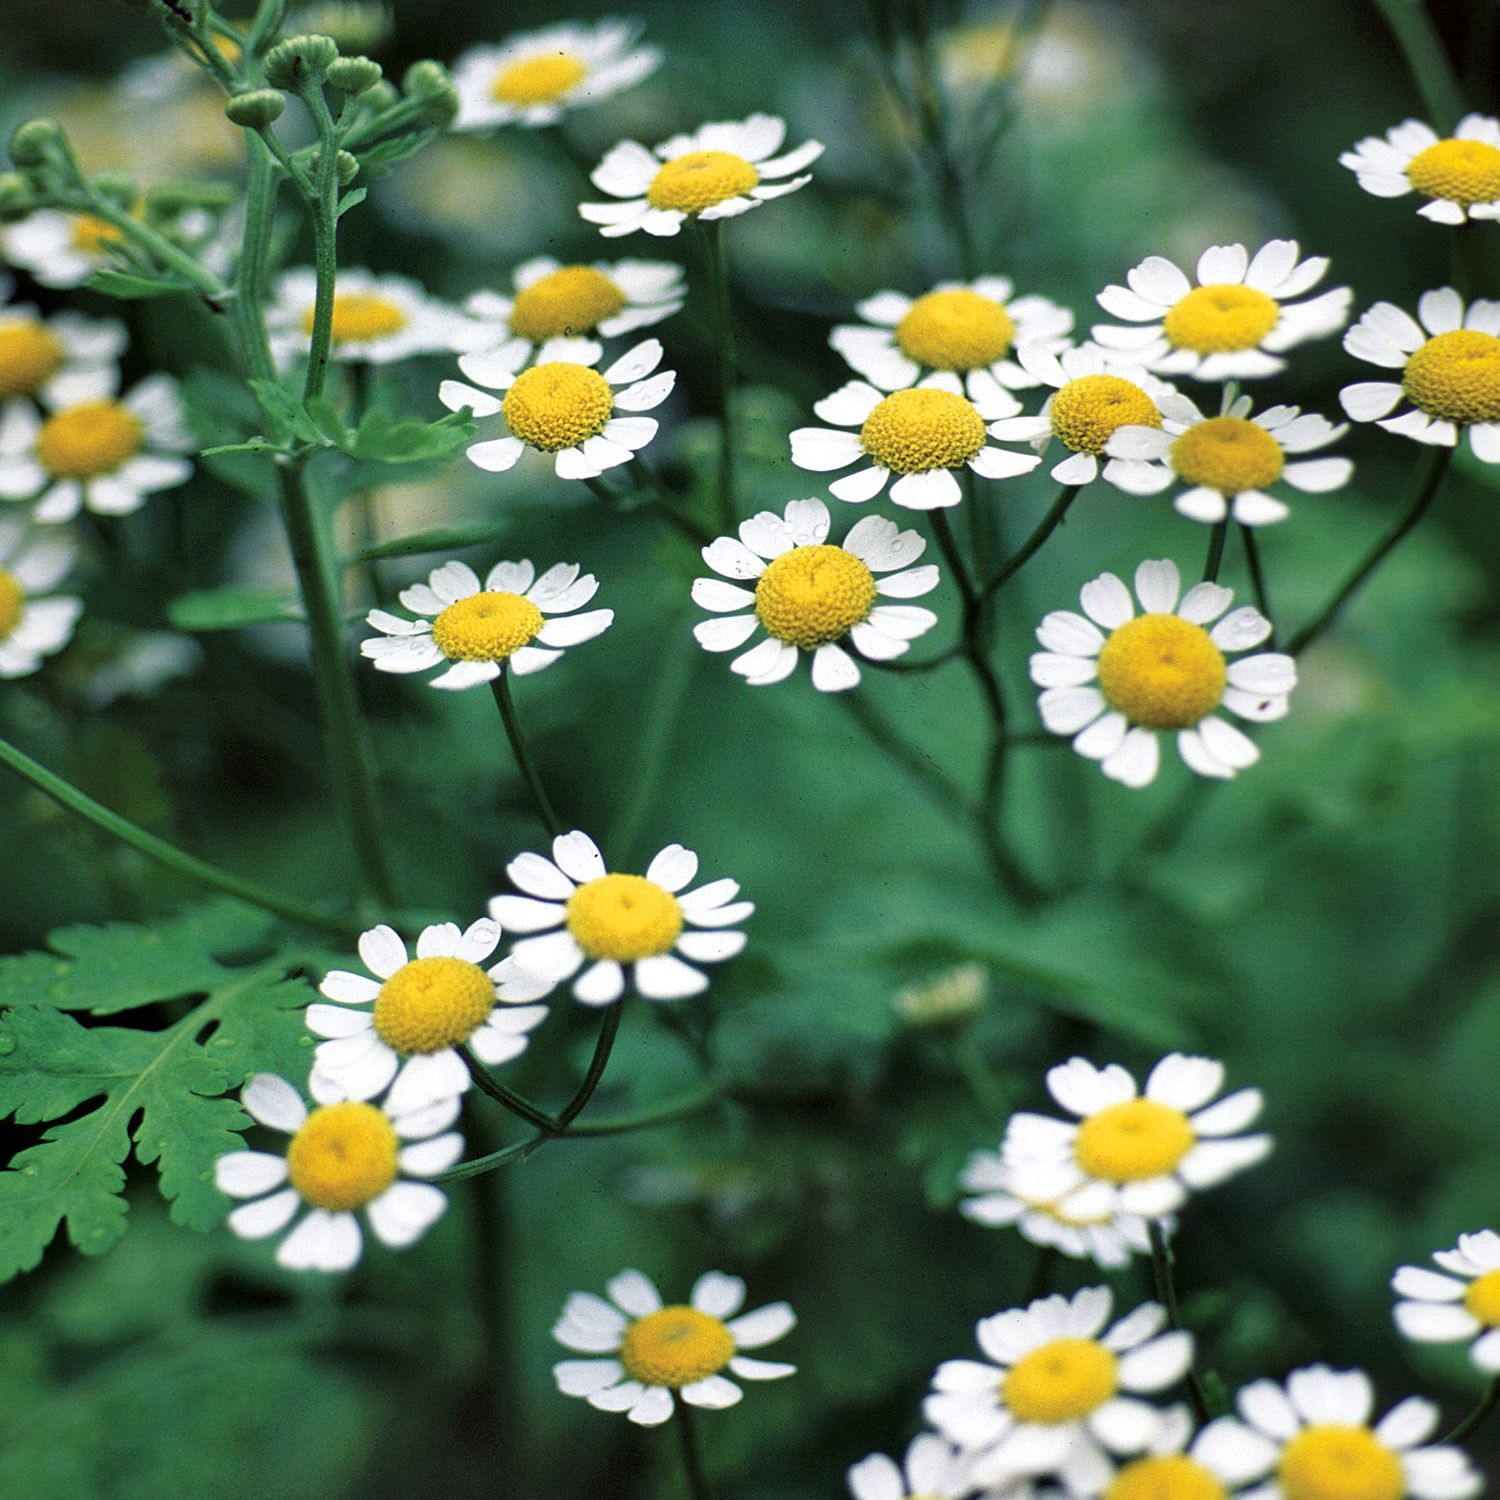 Feverfew Nccih In 2020 Headache Treatment Feverfew Feverfew Plant